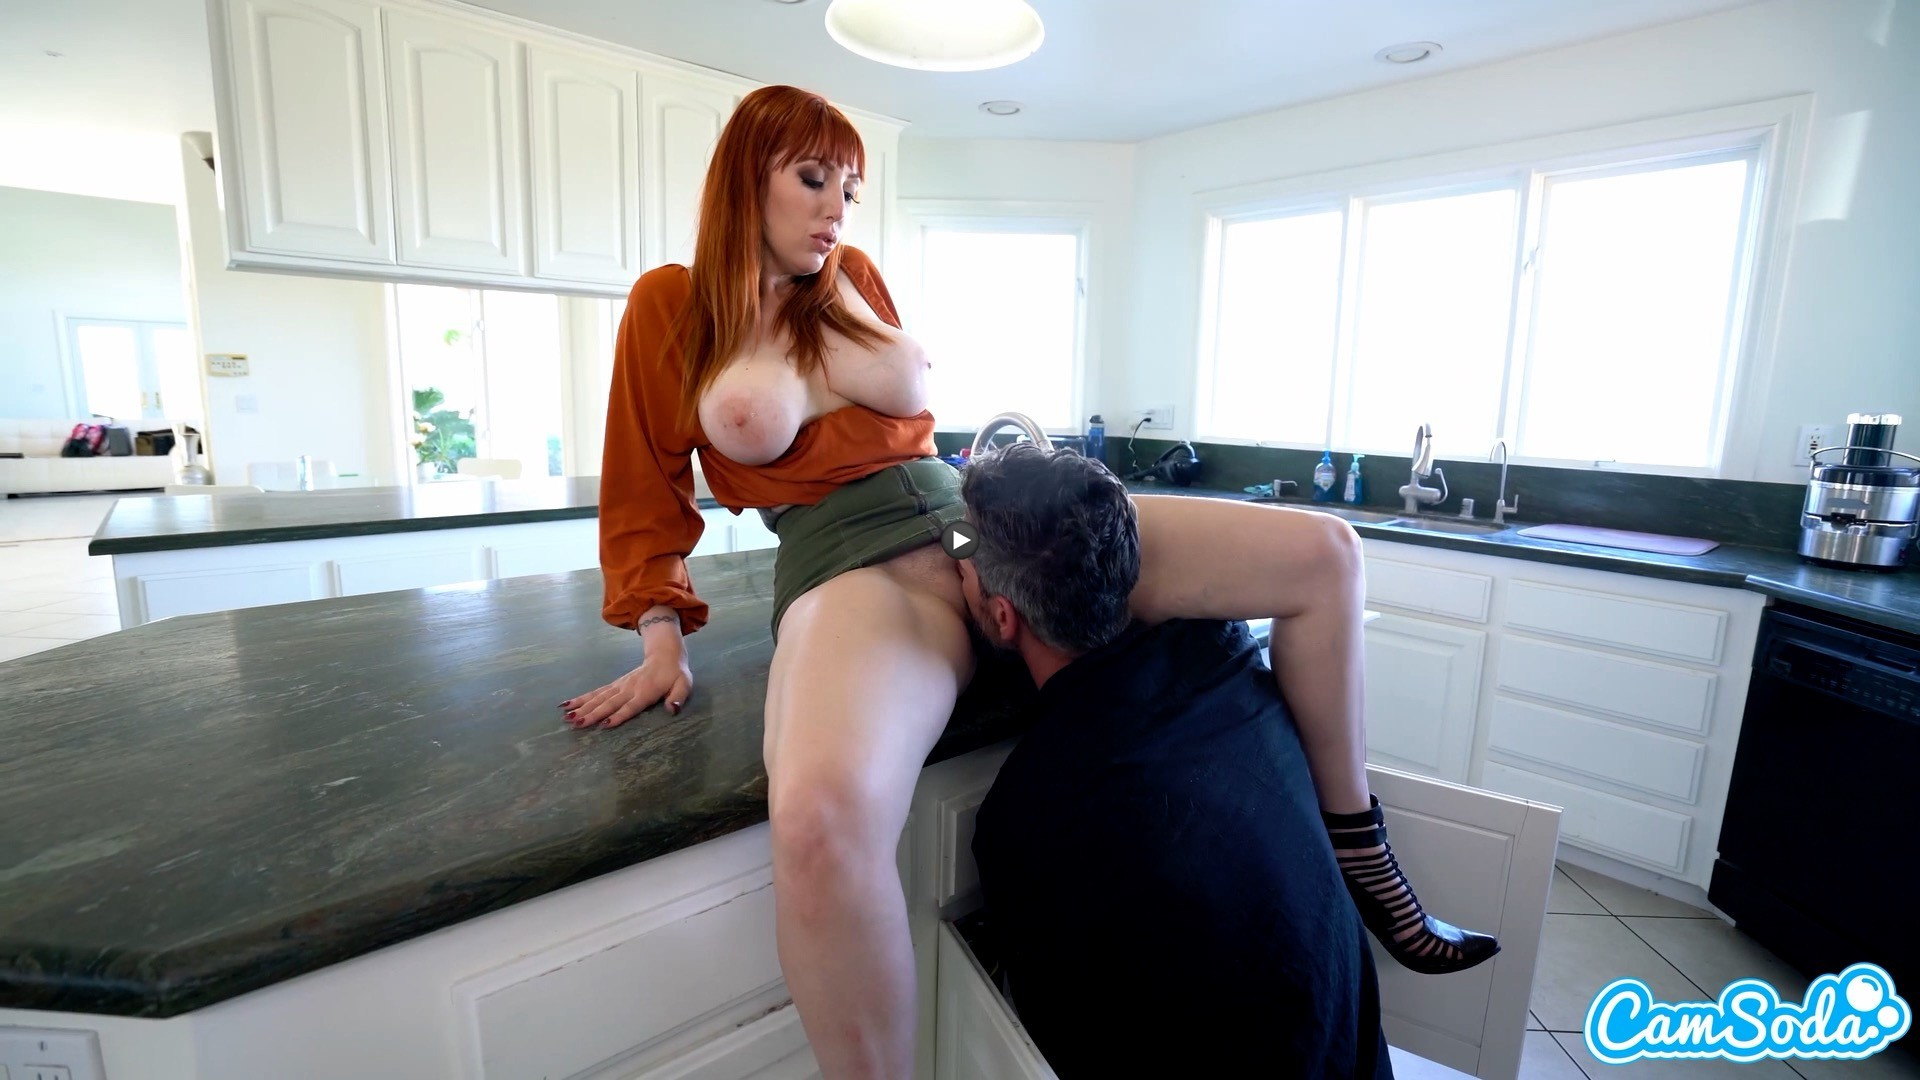 Watch Trailer Lauren Phillips Gets Her Pipes Cleaned